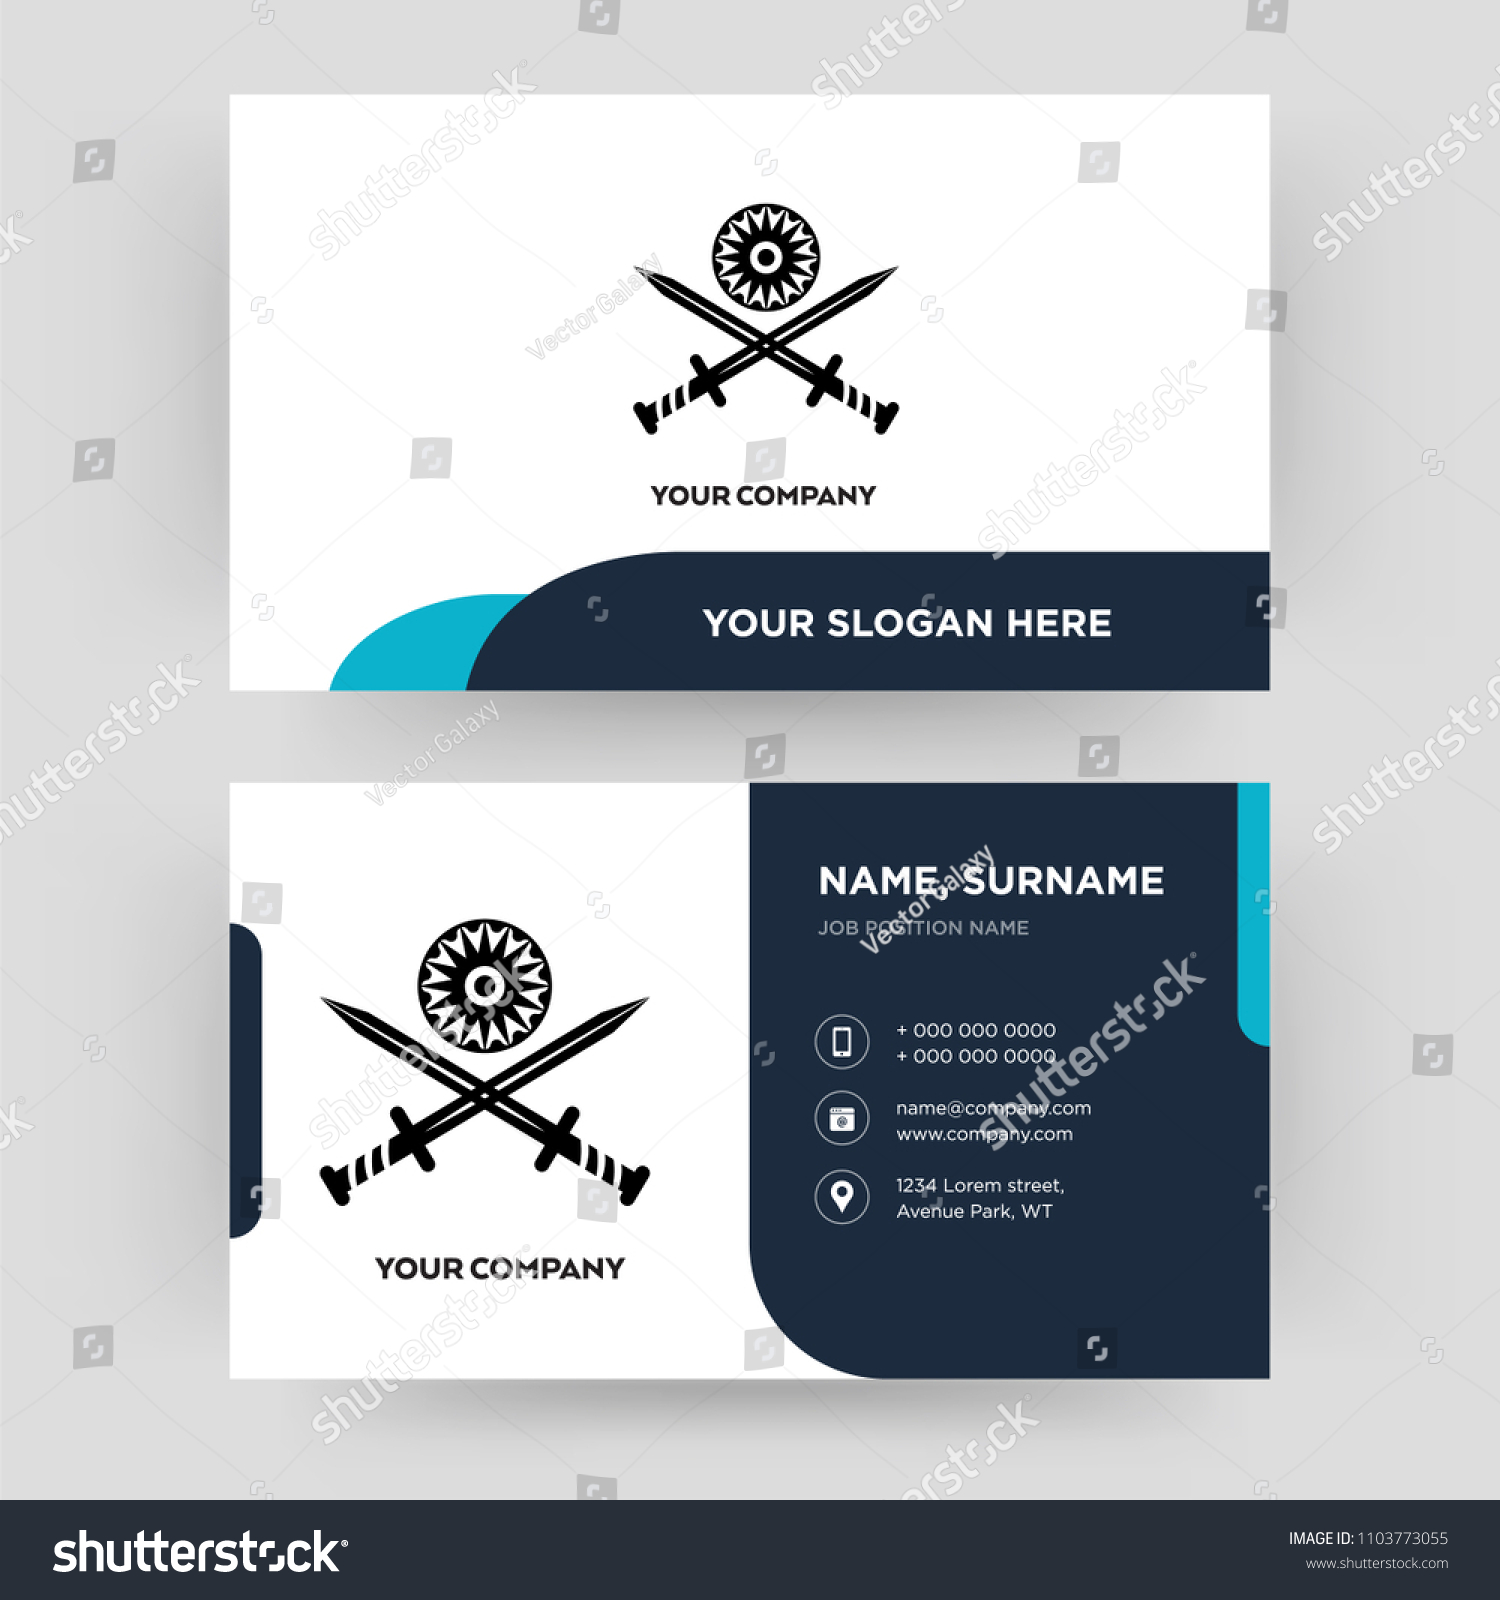 Indian Army Business Card Design Template Stock Vector 1103773055 ...